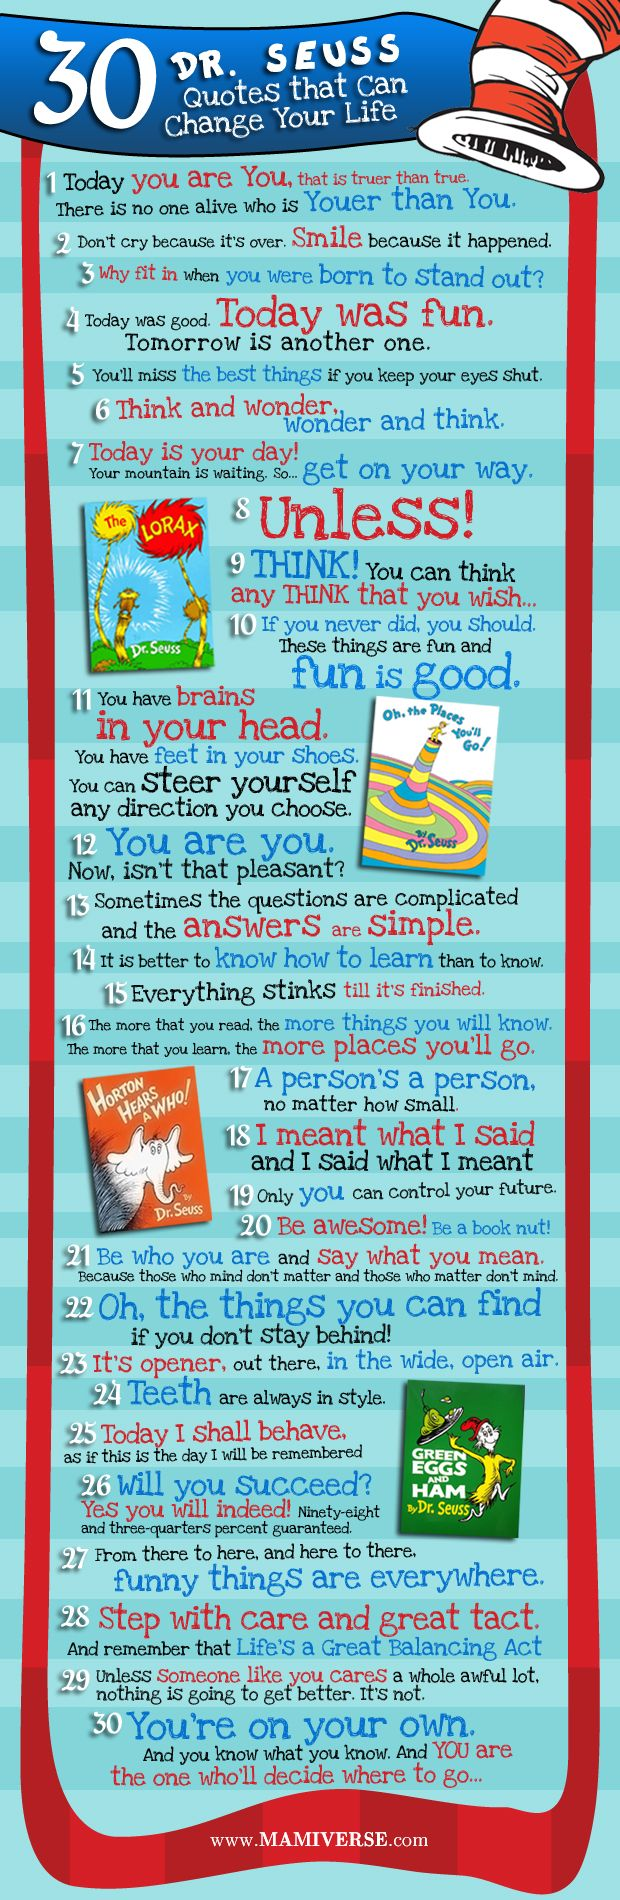 30 Dr. Suess Quotes